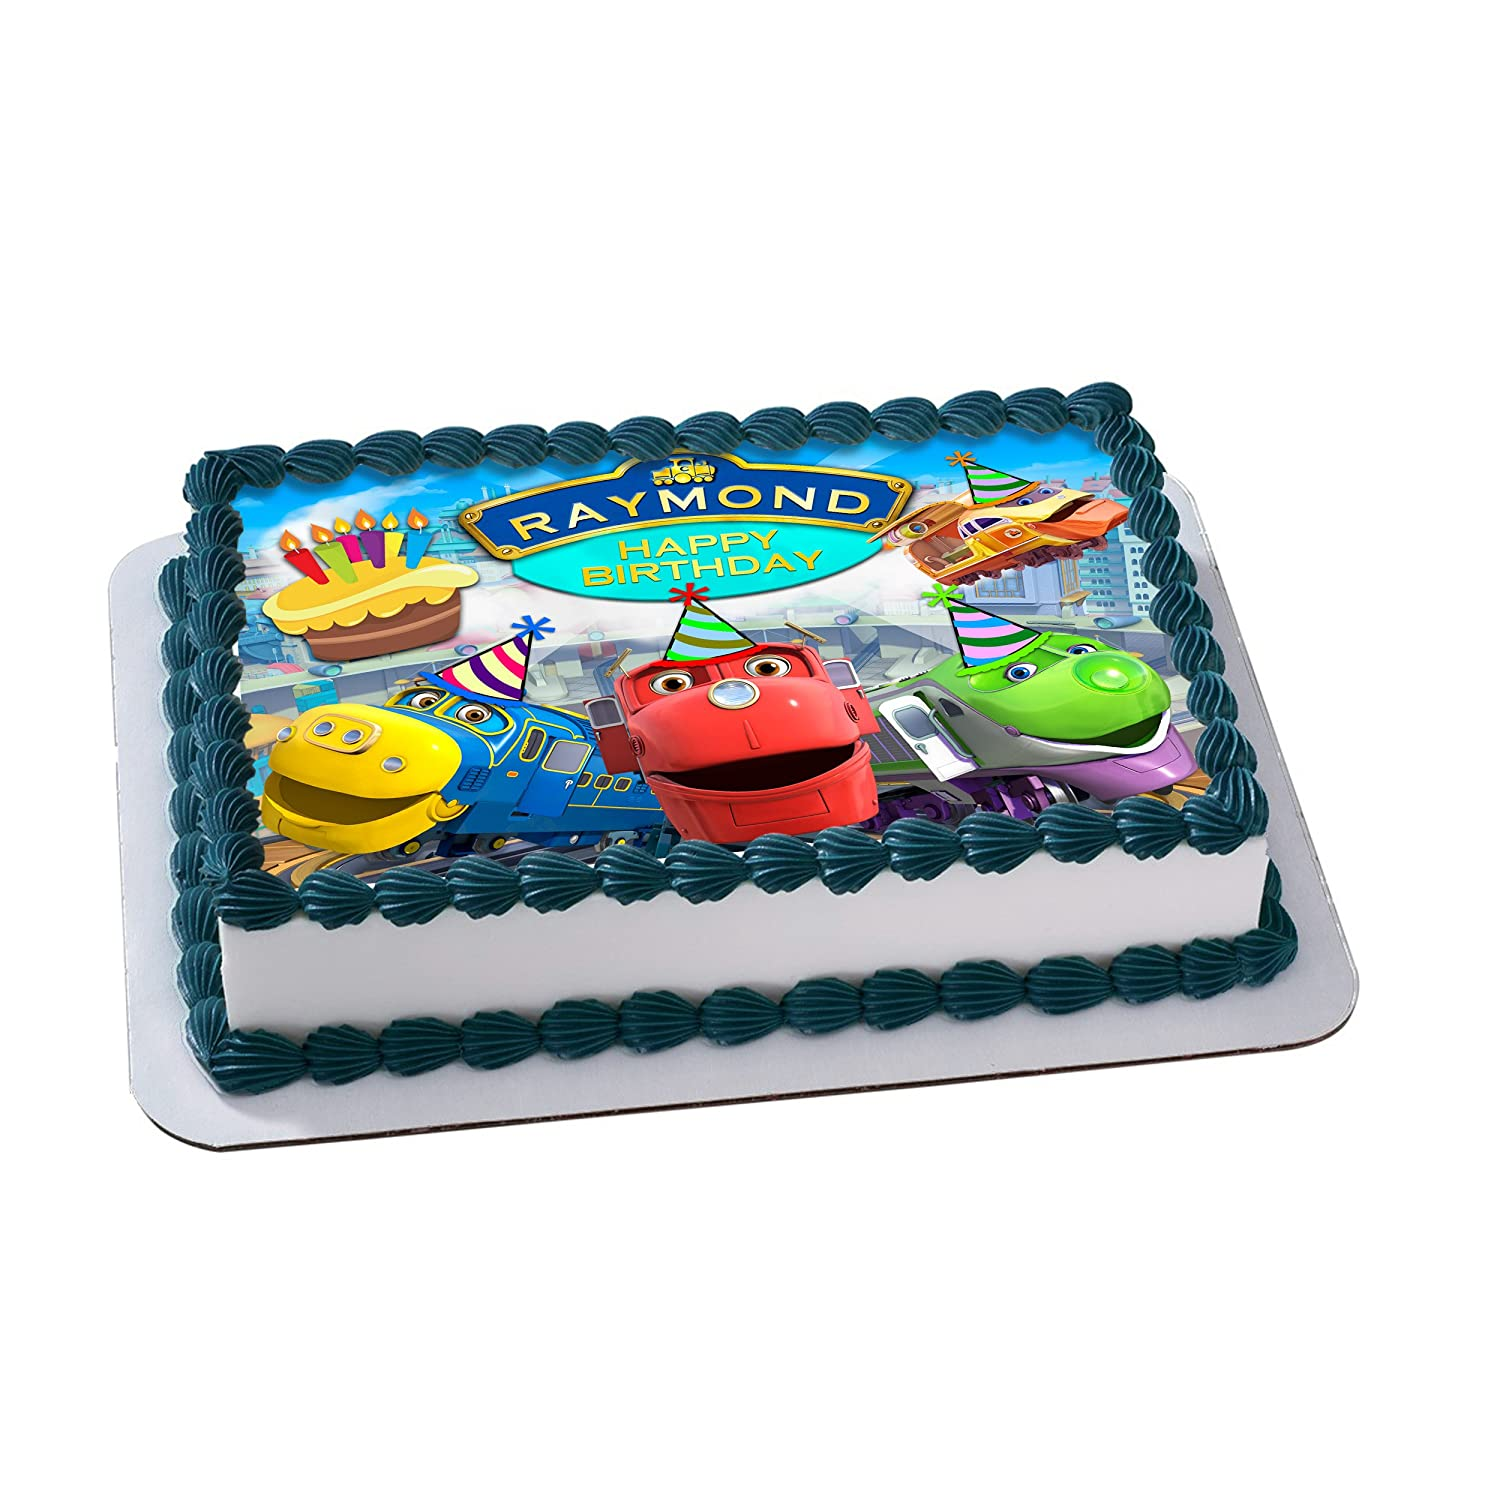 Chuggington Edible Cake Image Personalized Toppers Icing Sugar Paper